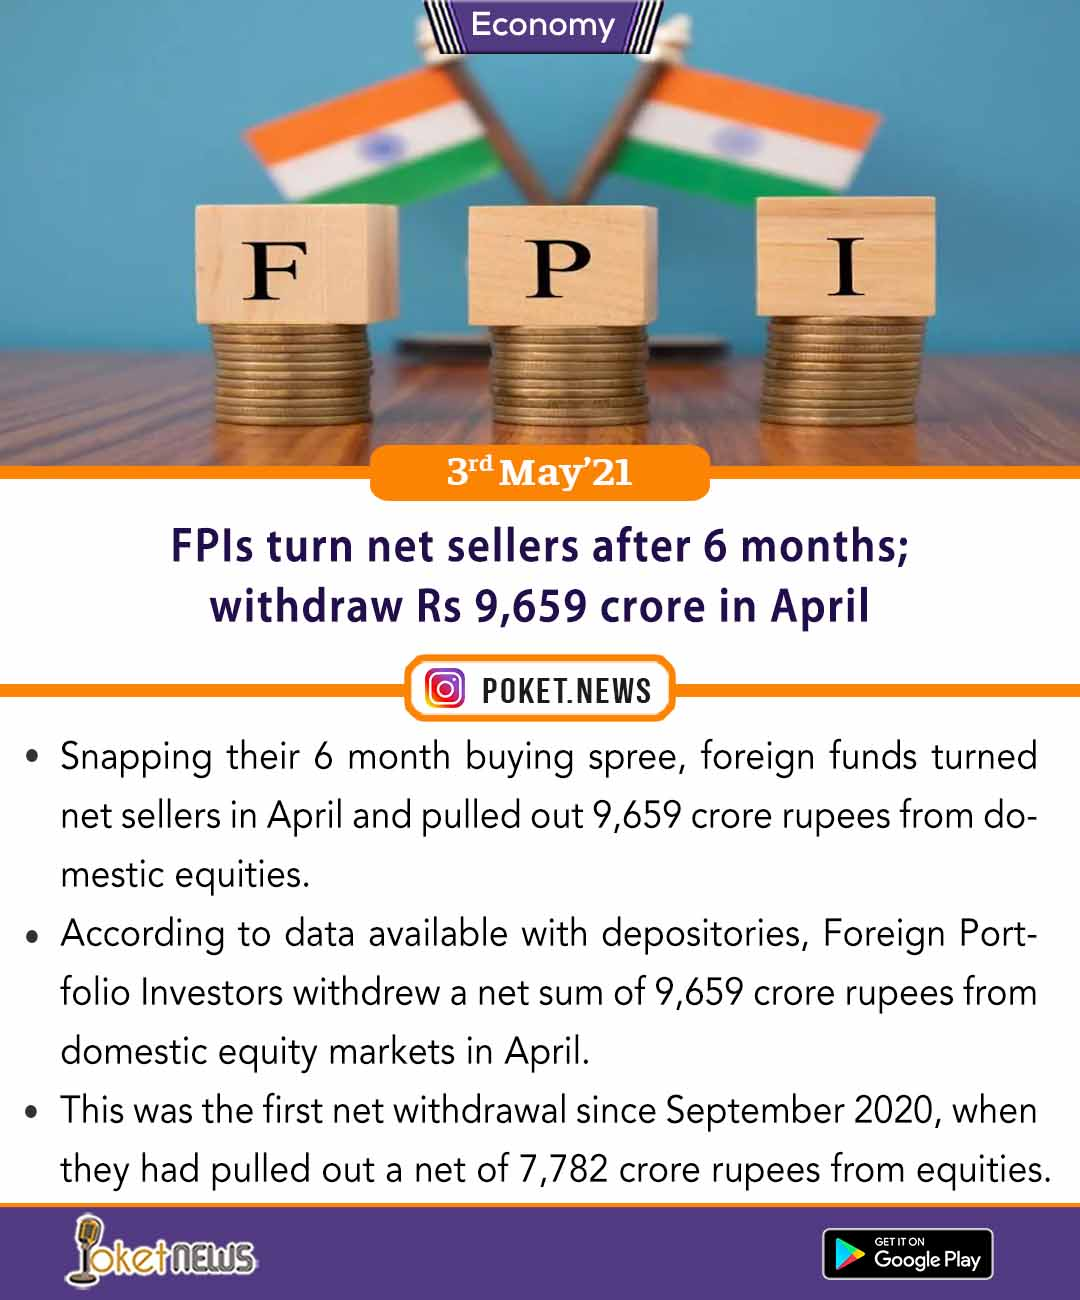 FPIs turn net sellers after 6 months; withdraw Rs 9,659 crore in April